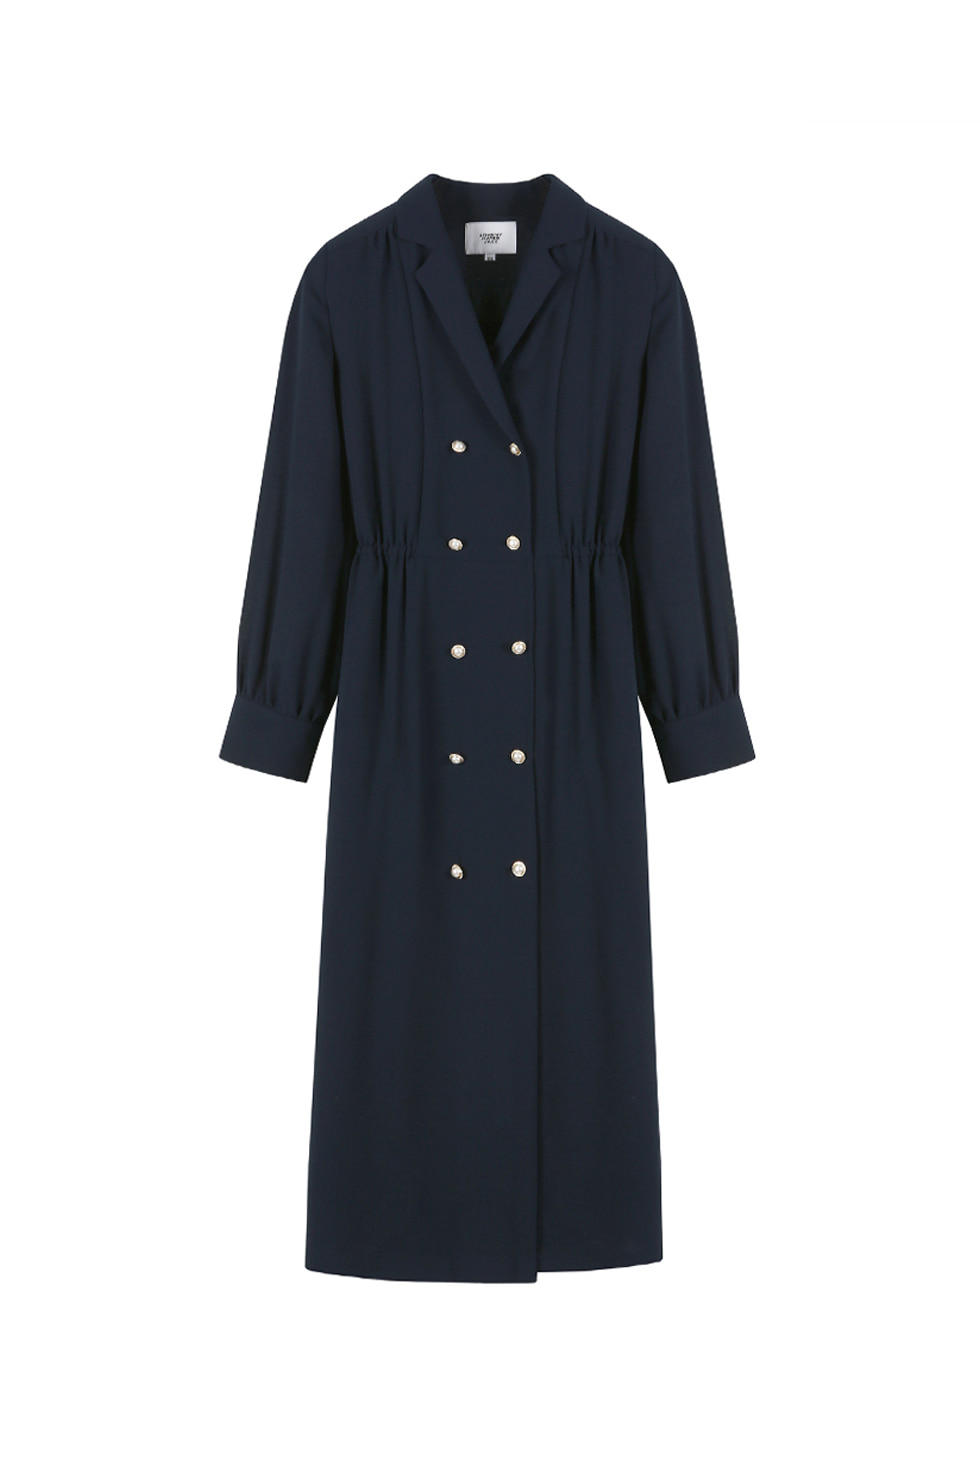 PEARL BUTTON DRESS - NAVY